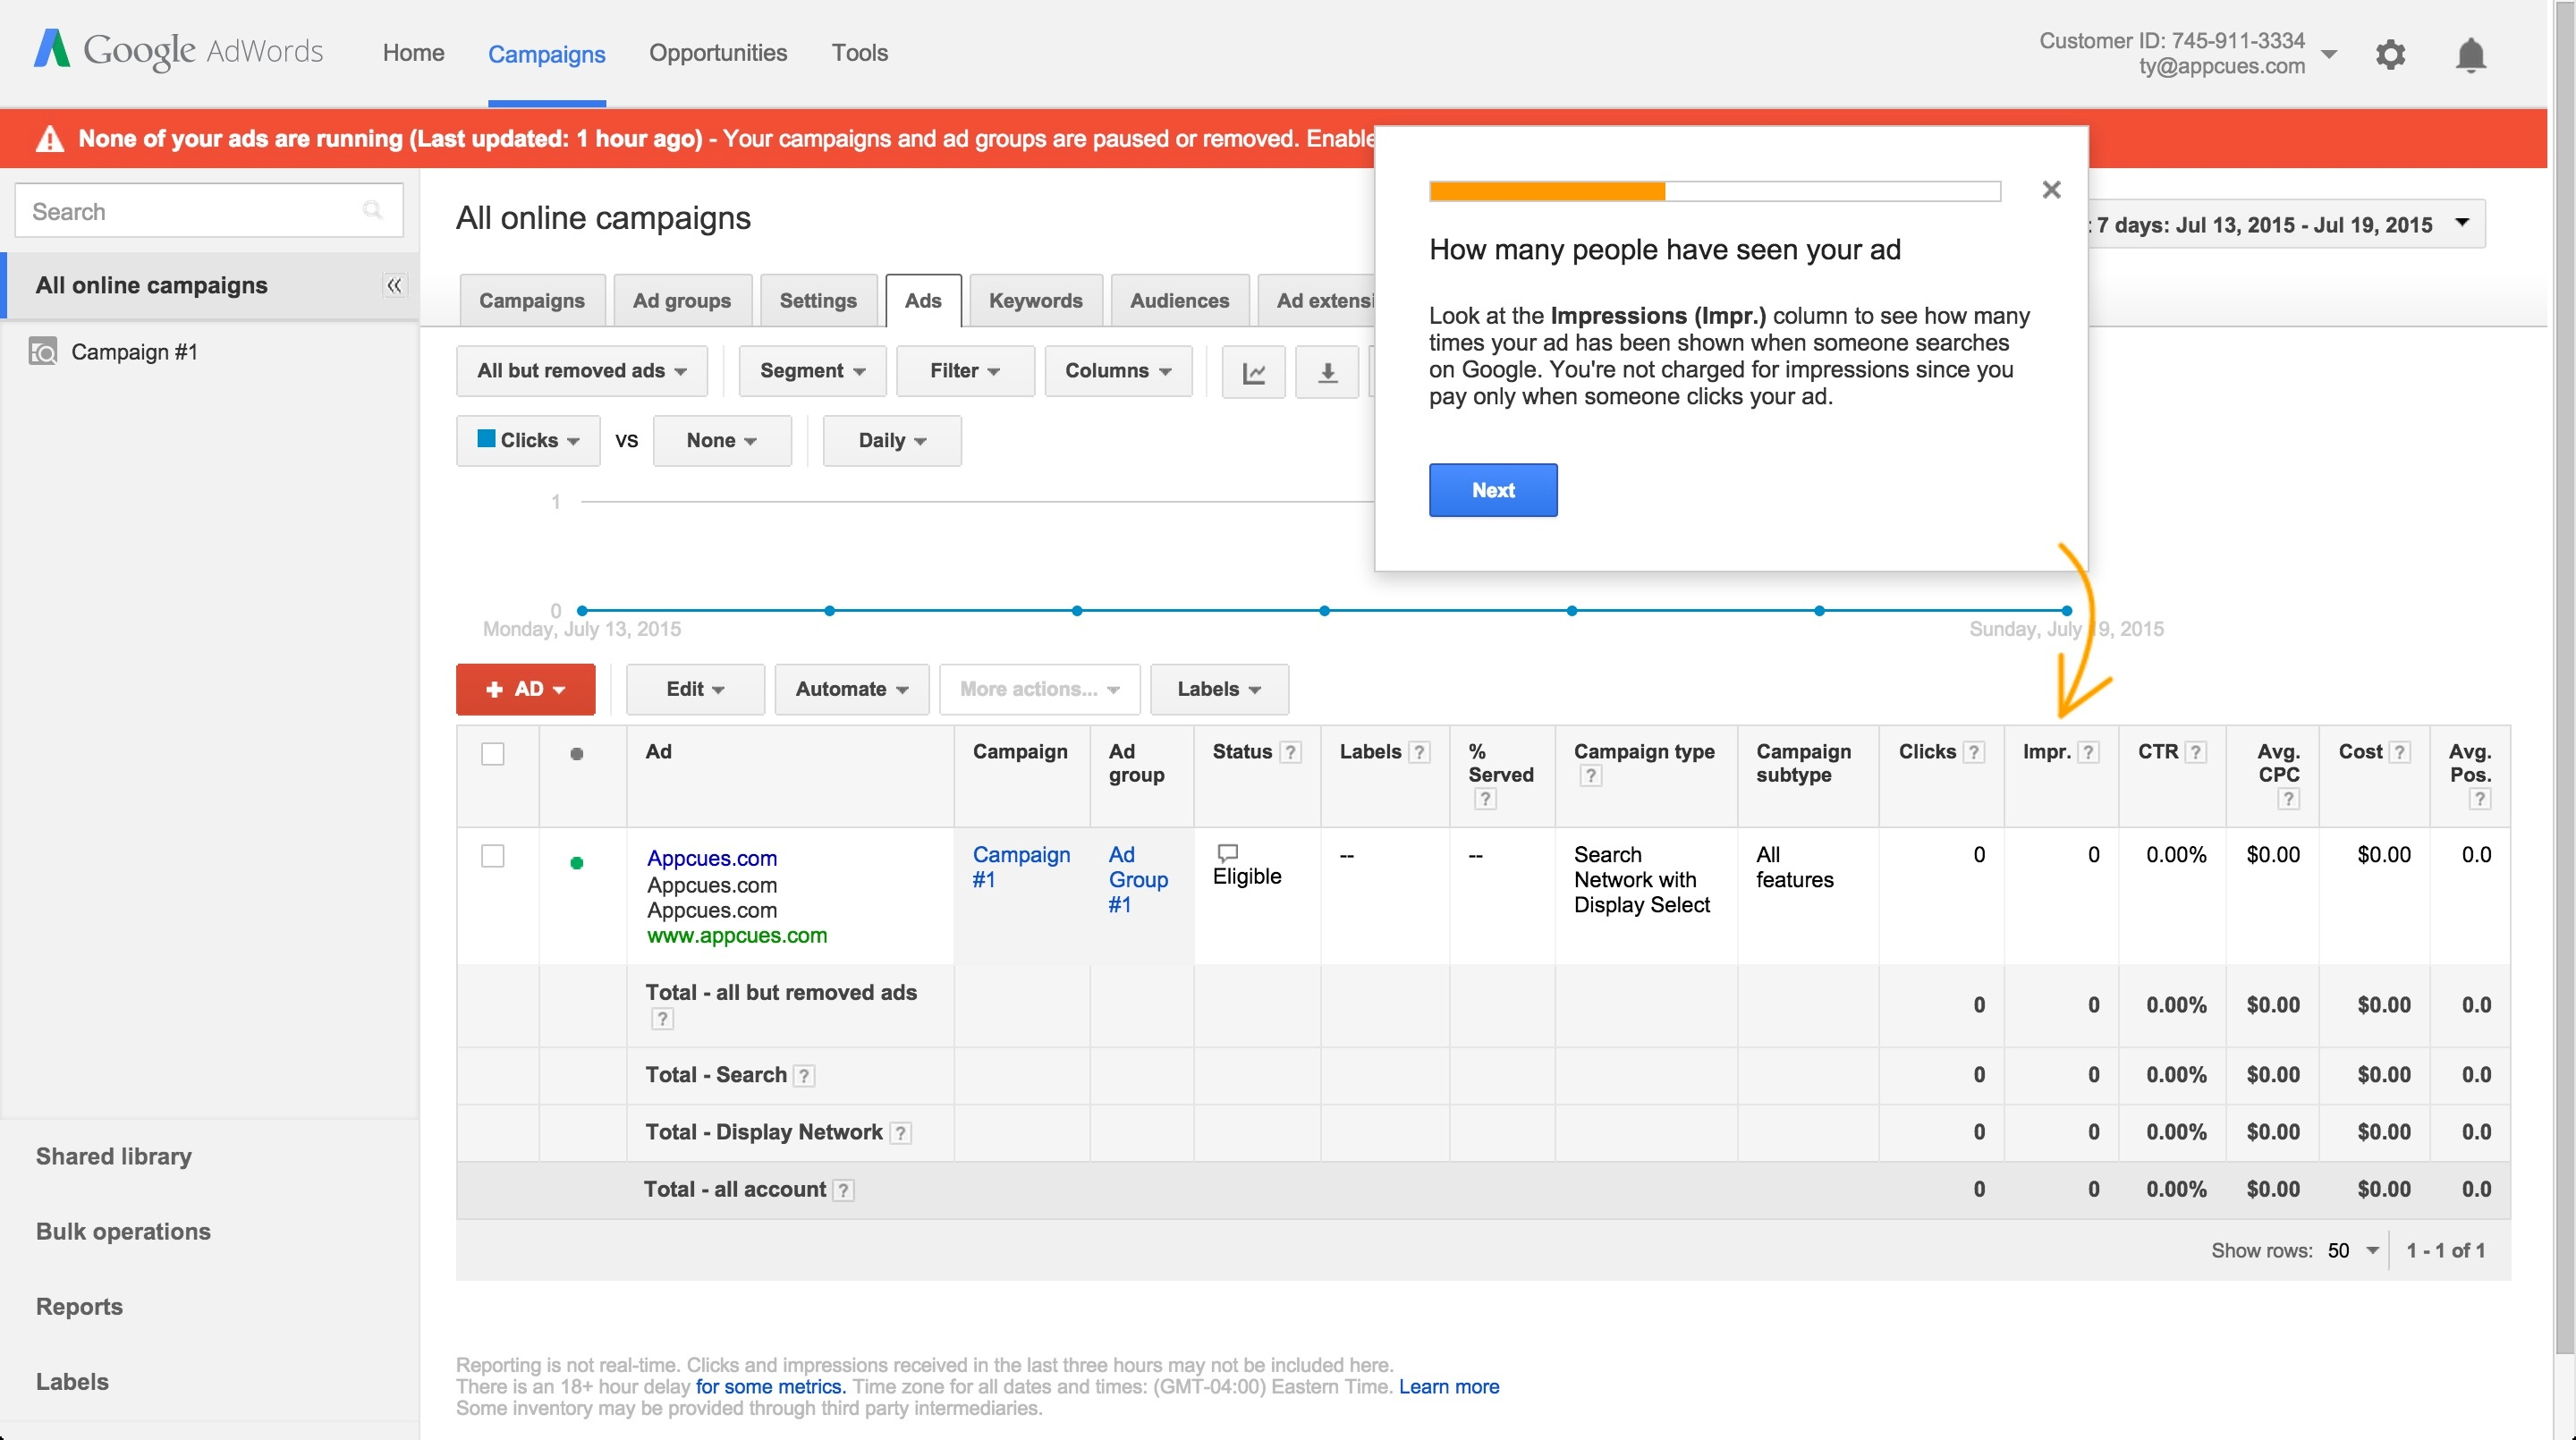 Adwords onboarding tour step 6